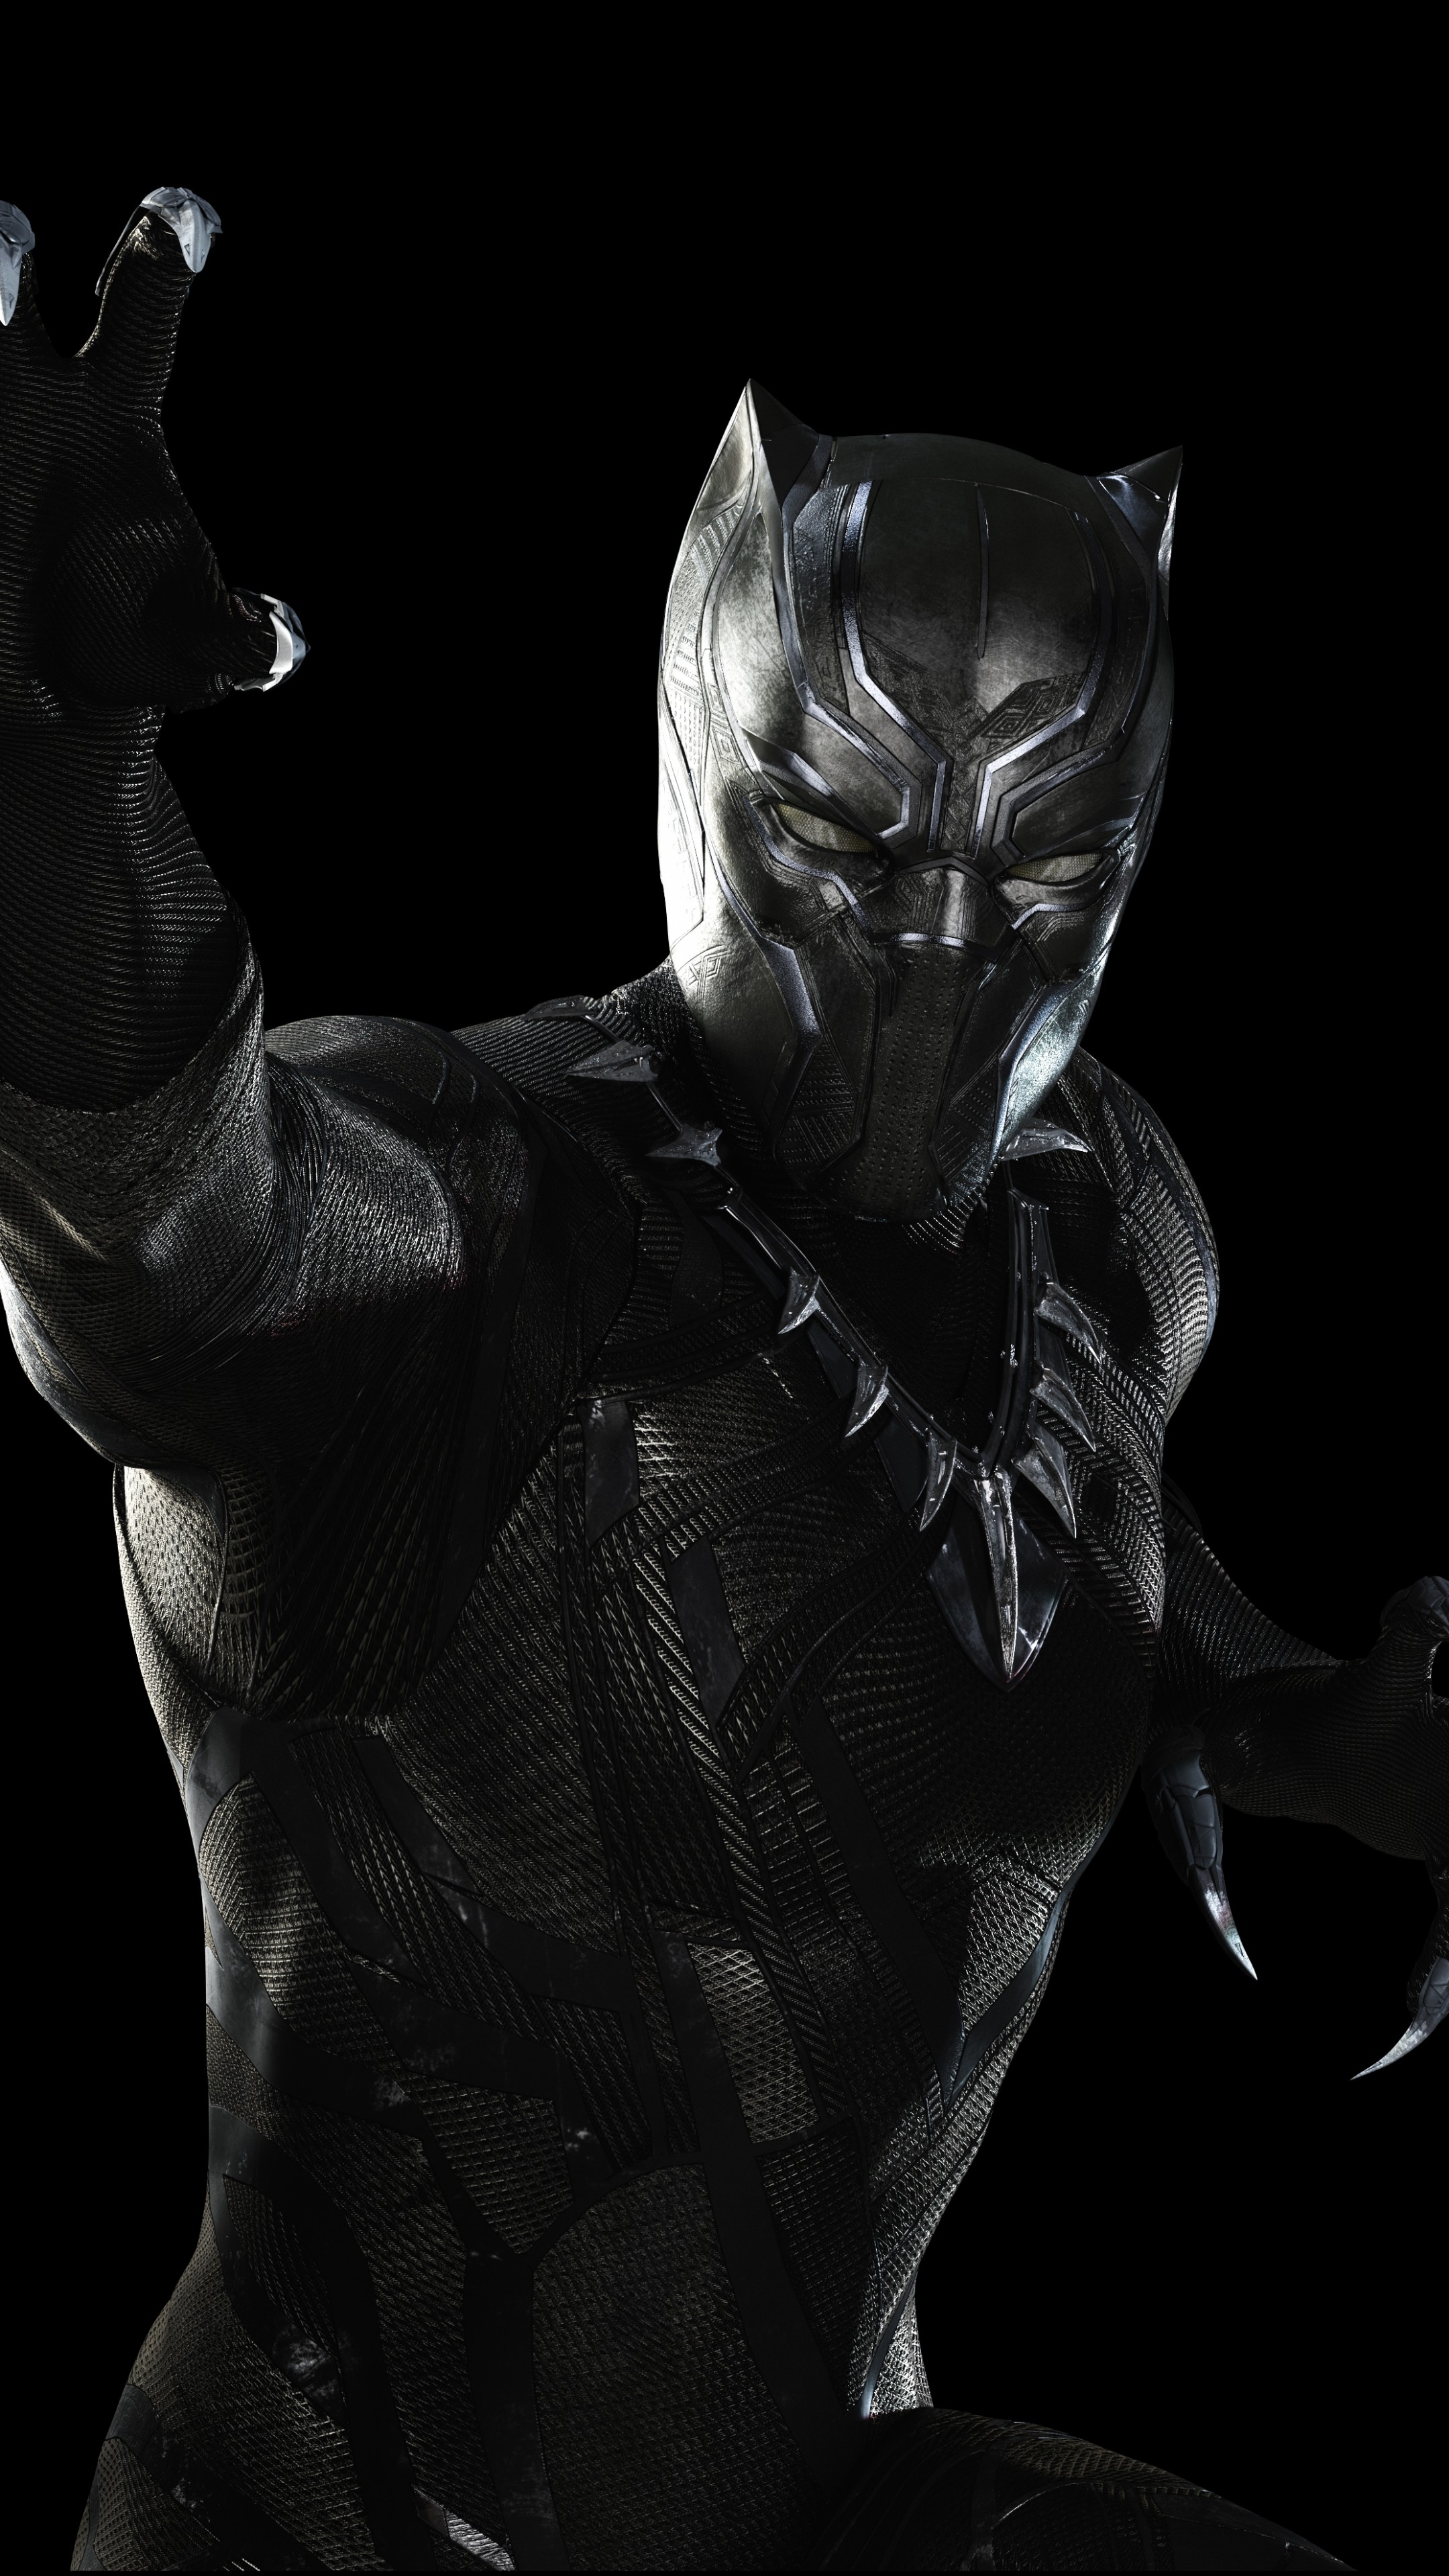 Wallpaper Captain America 3 Civil War Black Panther Marvel Best